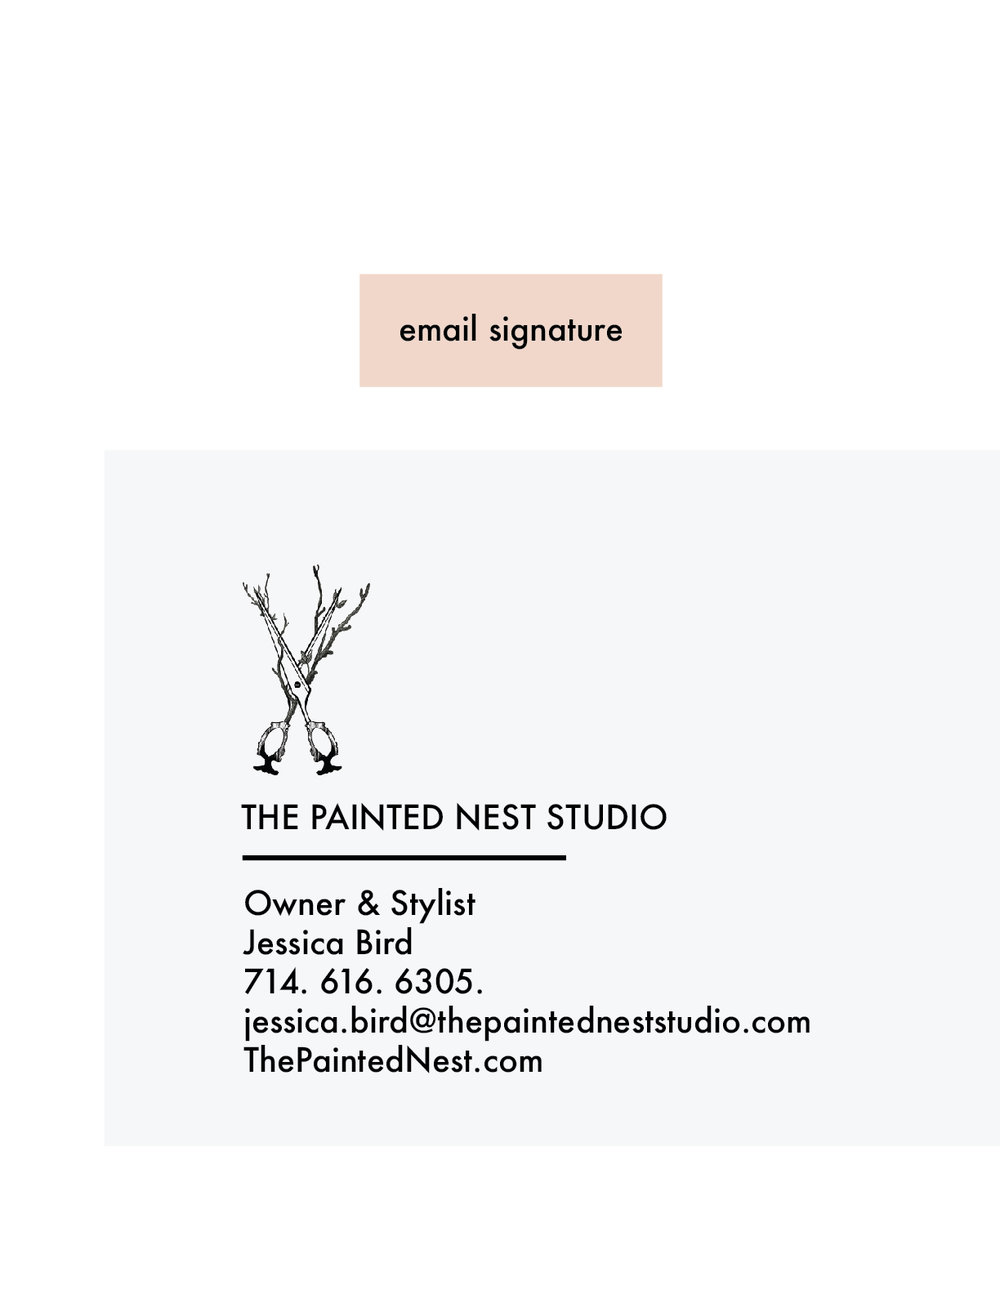 the painted nest studio email signature